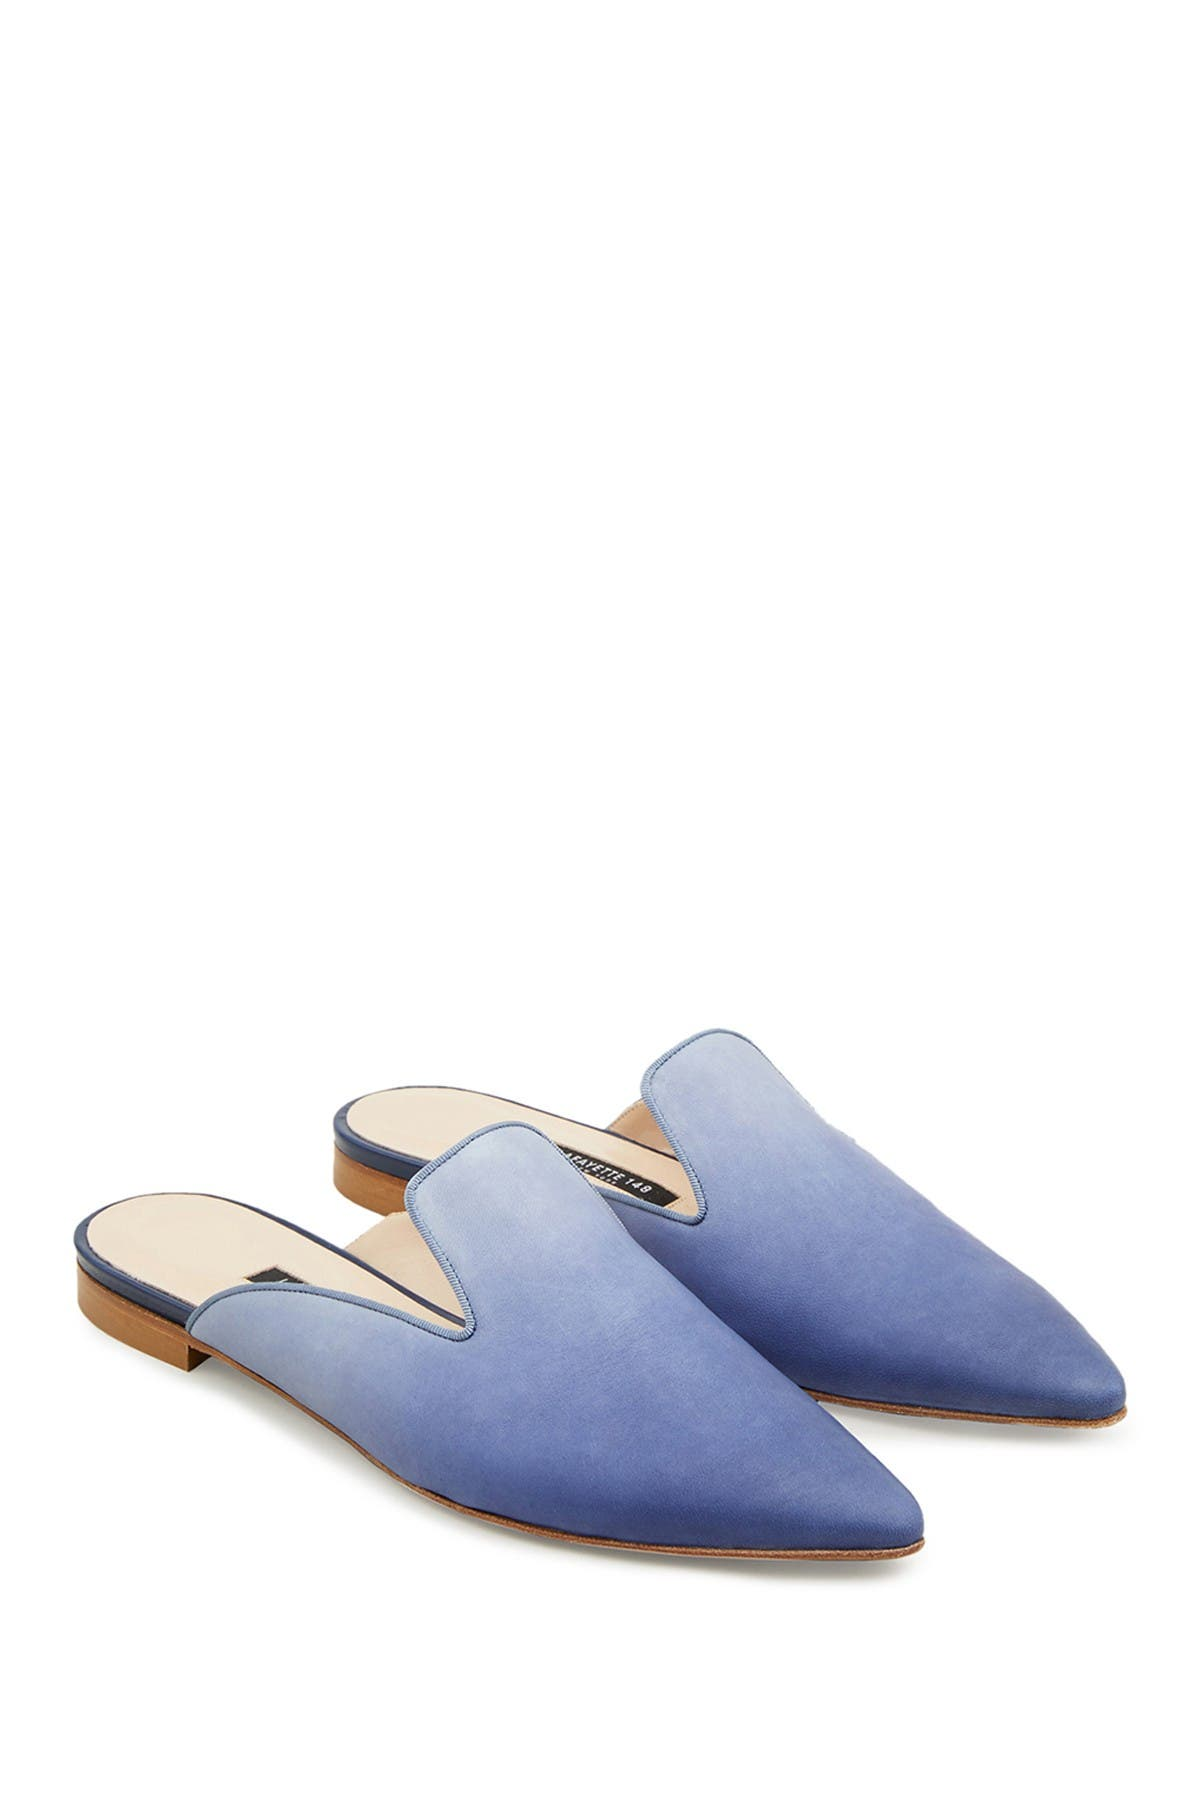 Image of Lafayette 148 New York Vento Loafer Mule